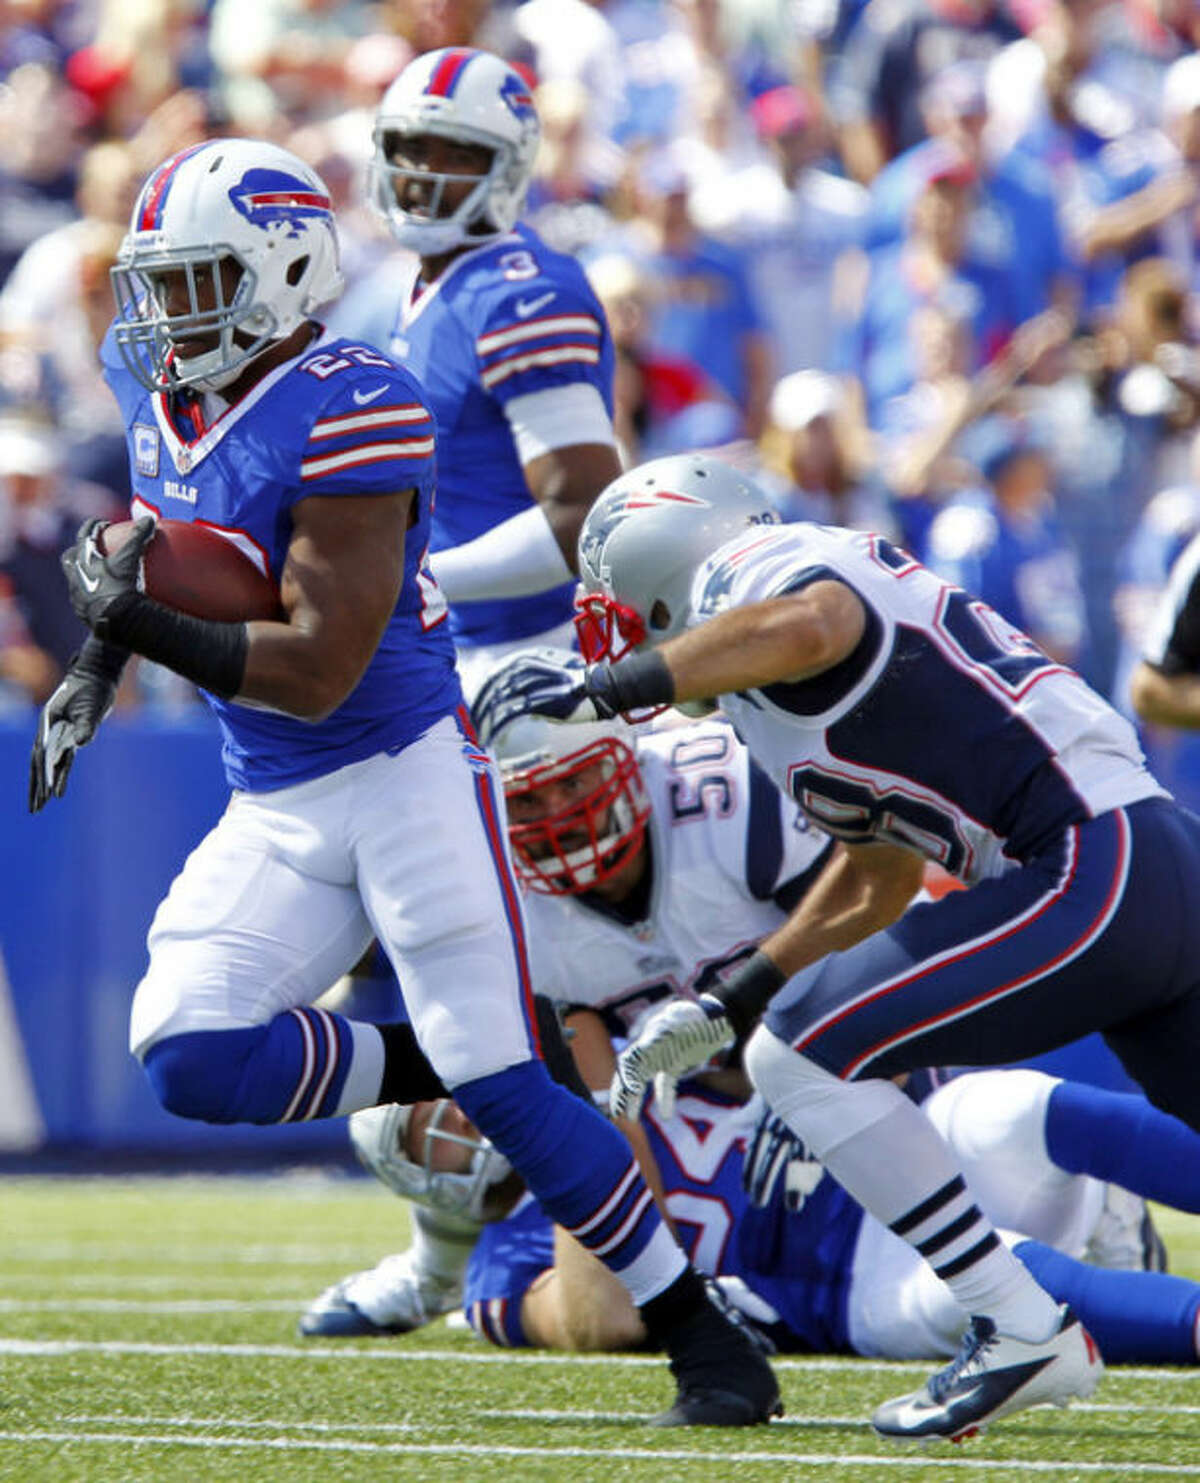 Buffalo Bills running back Fred Jackson (22) gets past New England Patriots' Steve Gregory (28) during the first half of an NFL football game on Sunday, Sept. 8, 2013, in Orchard Park. (AP Photo/Bill Wippert)